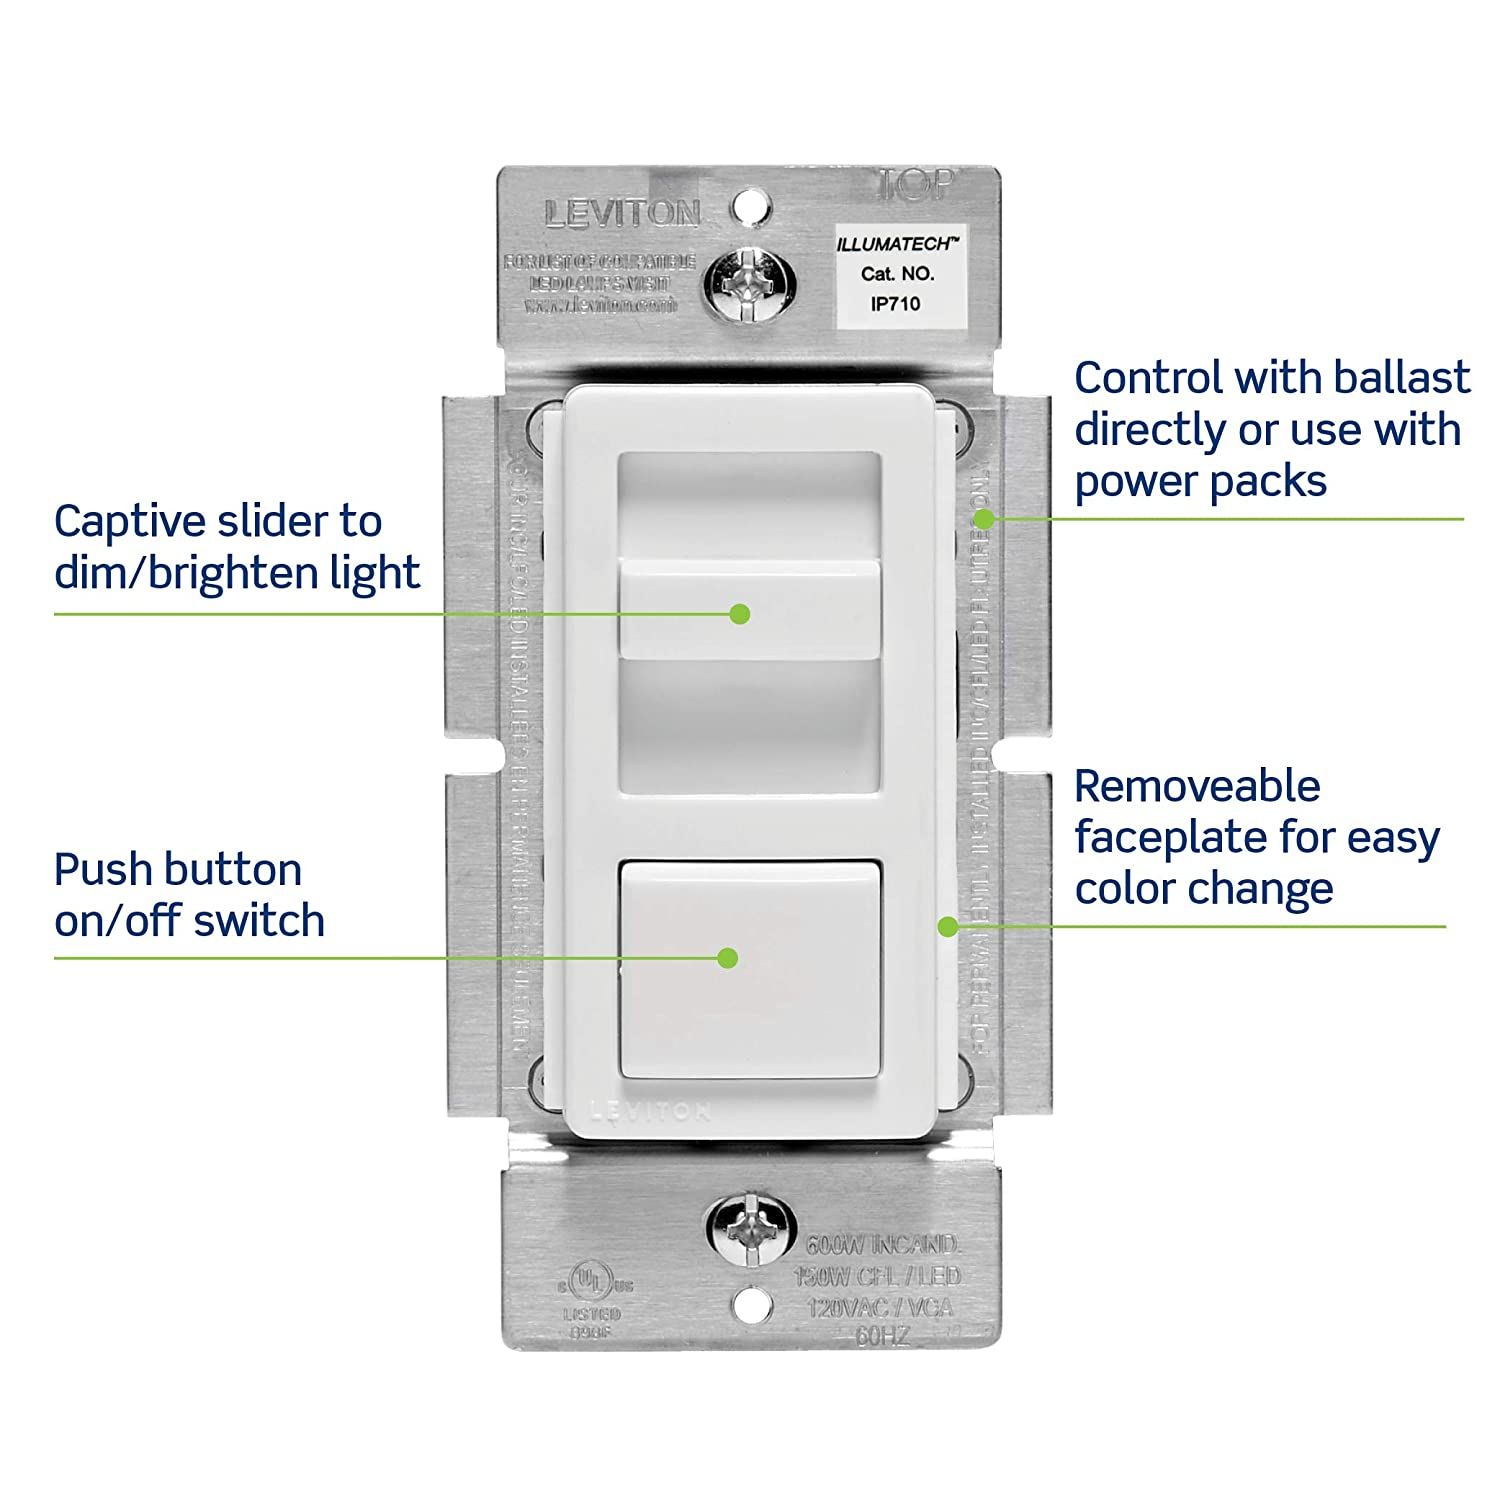 leviton ip710-lfz illumatech slide dimmer for led 0-10v power supplies,  1200va, 10a led, 120/277 vac, white w/ color change kits included - wall  dimmer